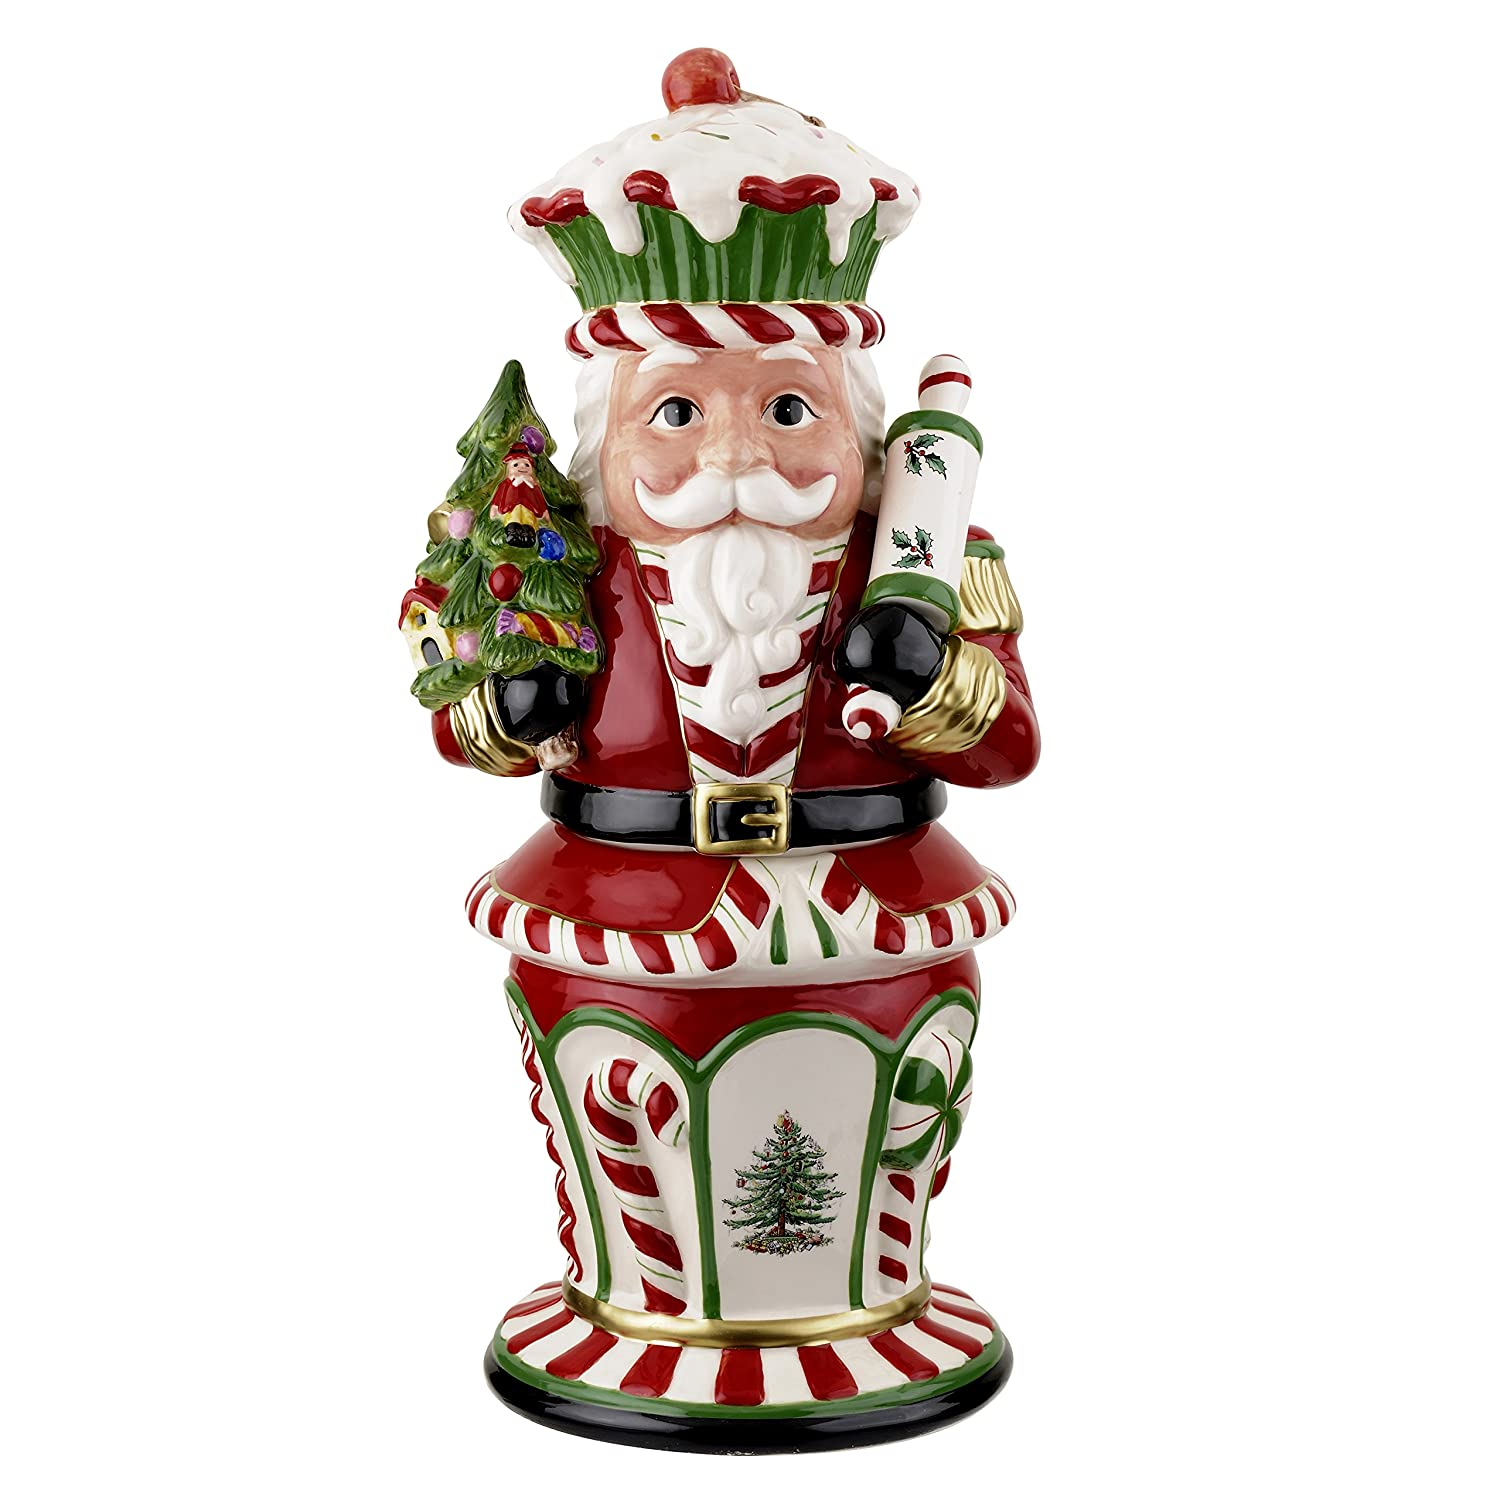 Spode Christmas Tree Peppermint Figural Nutcracker Cookie Jar